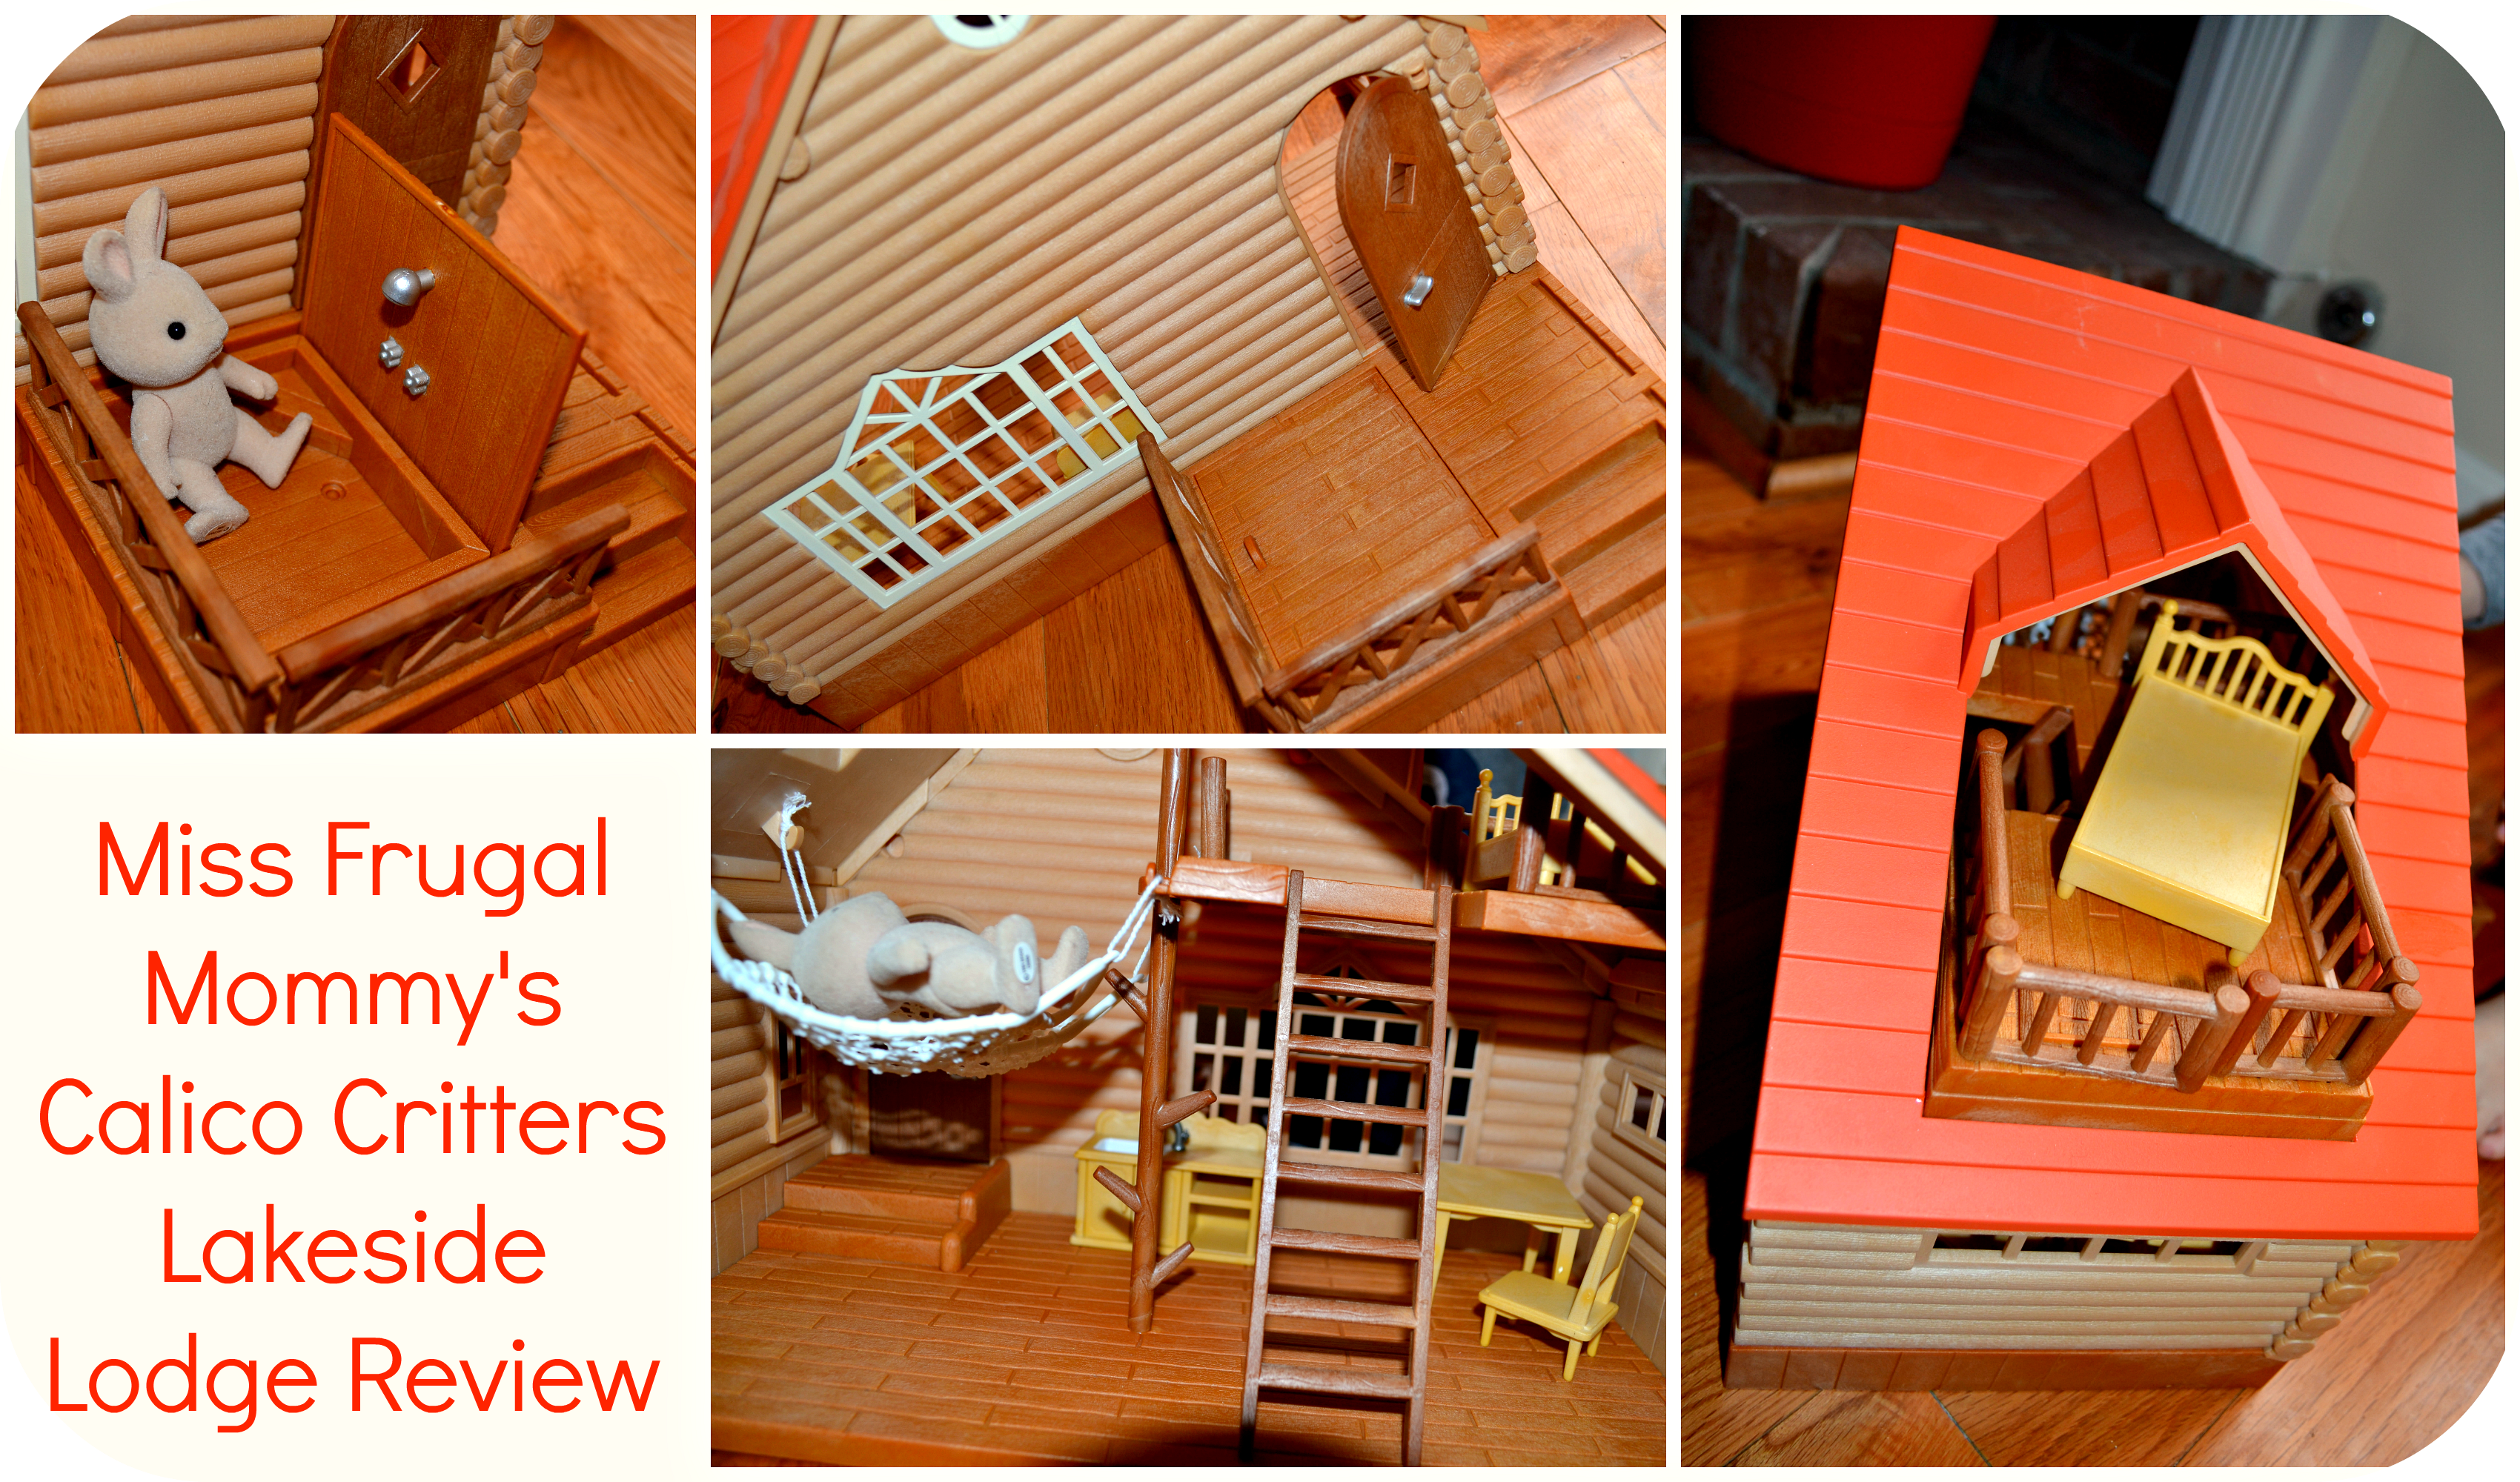 Calico Critters Lakeside Lodge Review